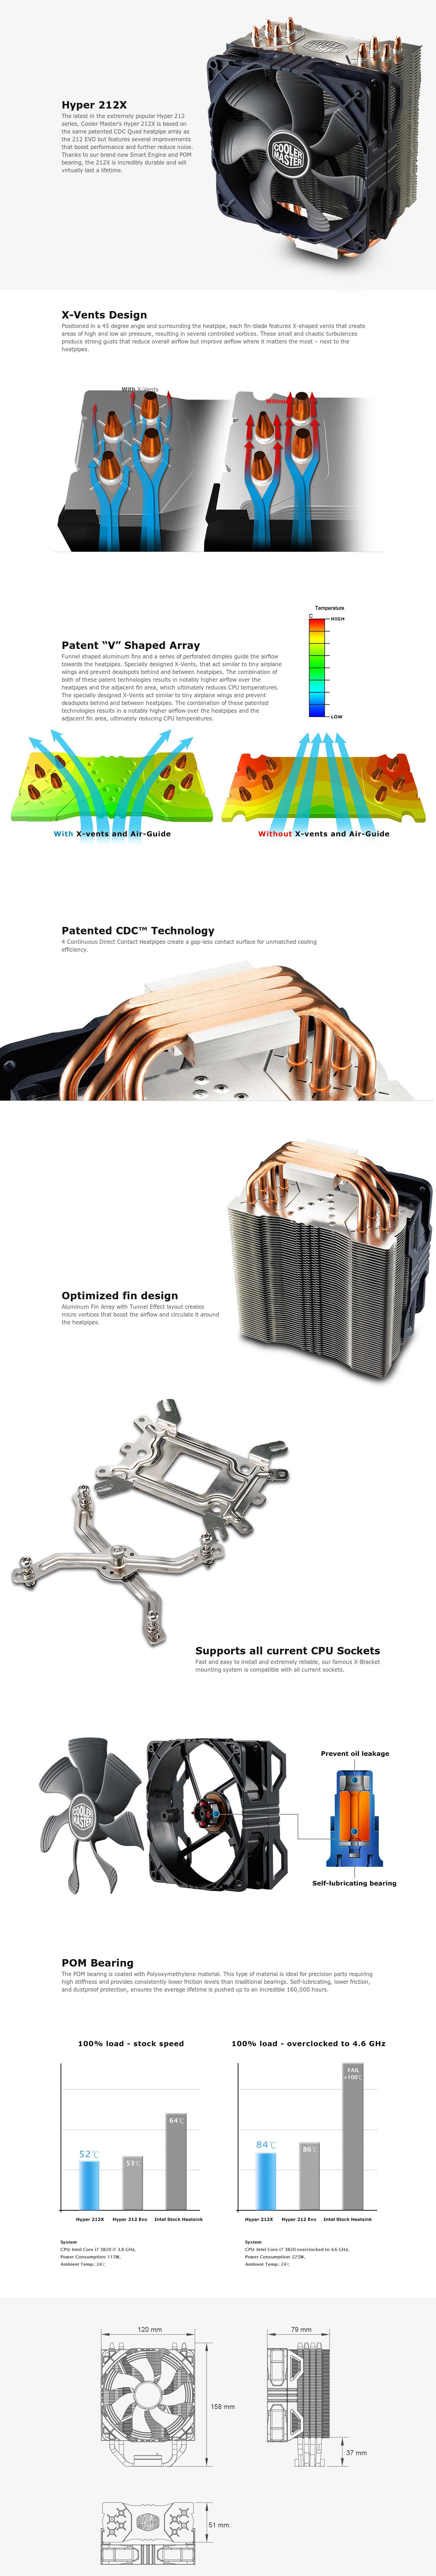 A large marketing image providing additional information about the product Cooler Master Hyper 212 X CPU Cooler - Additional alt info not provided